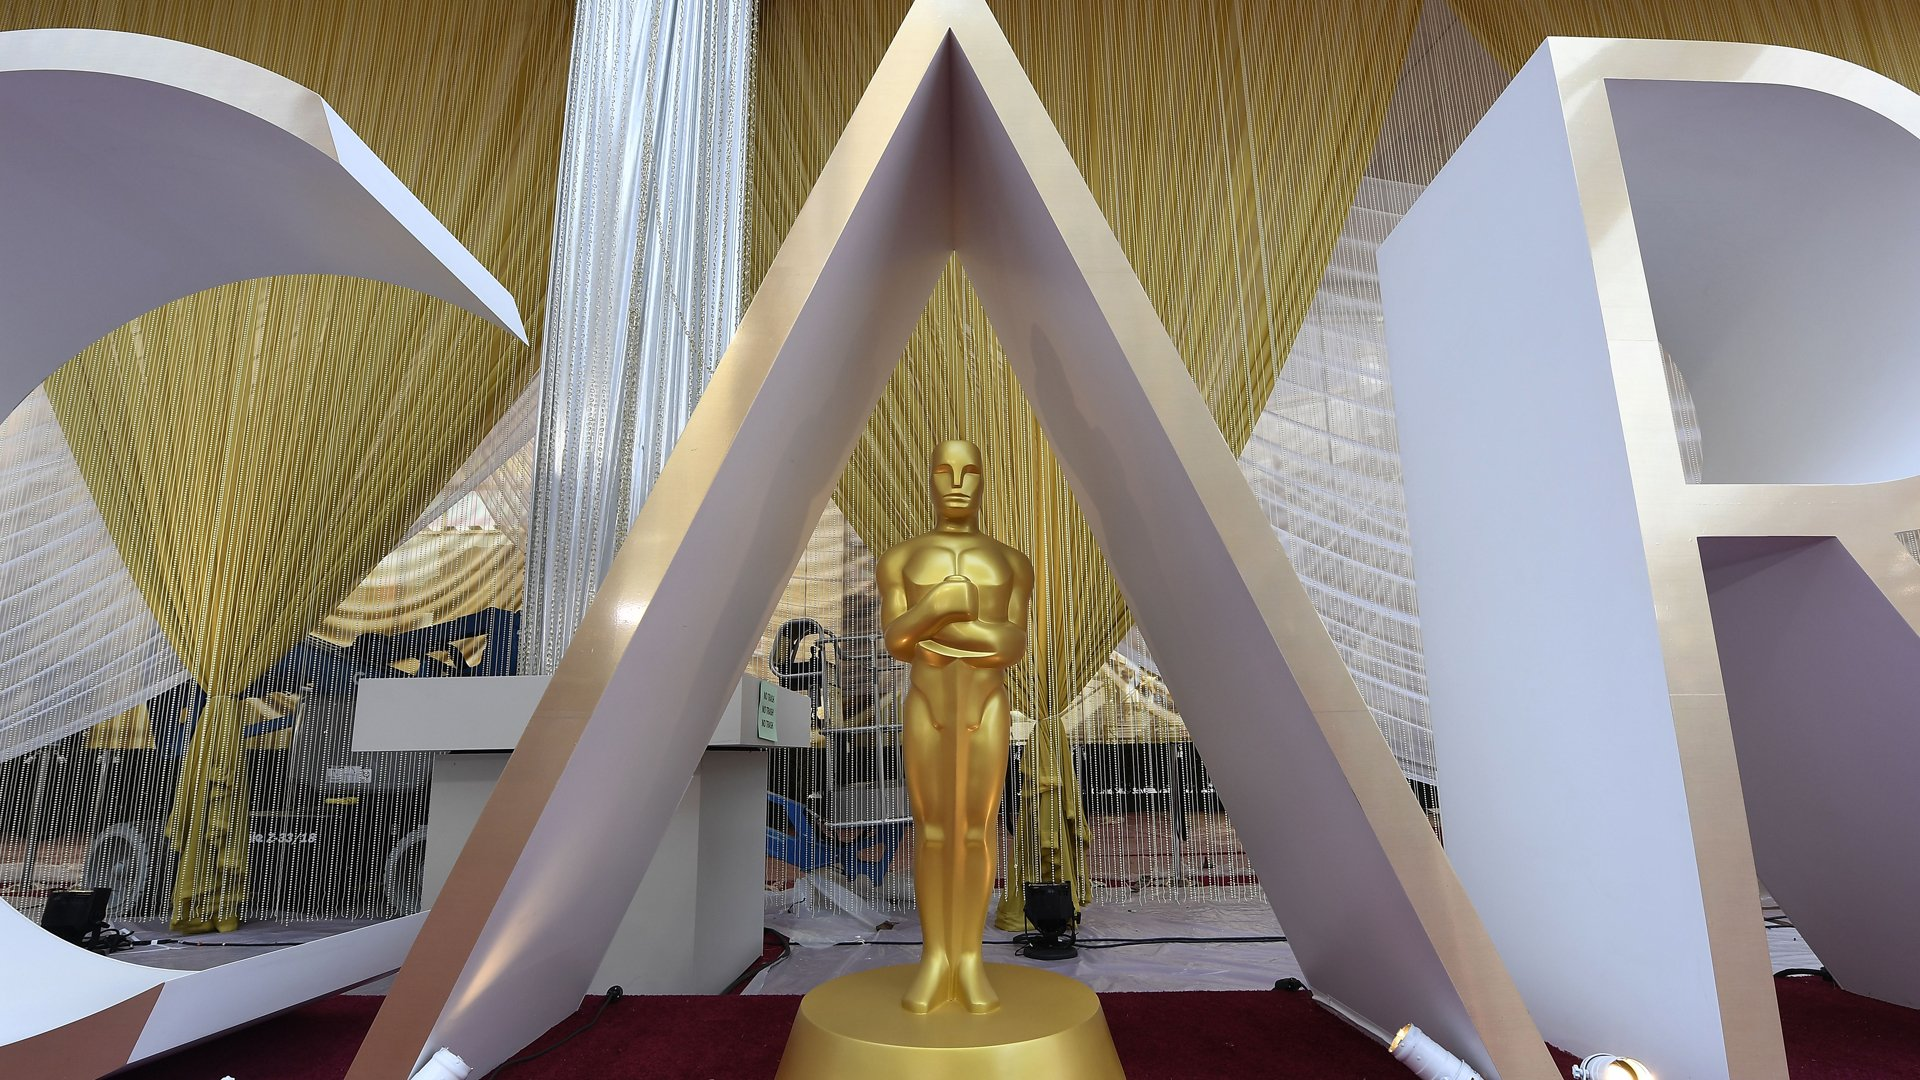 Preparations continue for the 92nd Annual Academy Awards on February 8, 2020 in Los Angeles, California. (Credit: Kevork Djansezian/Getty Images)